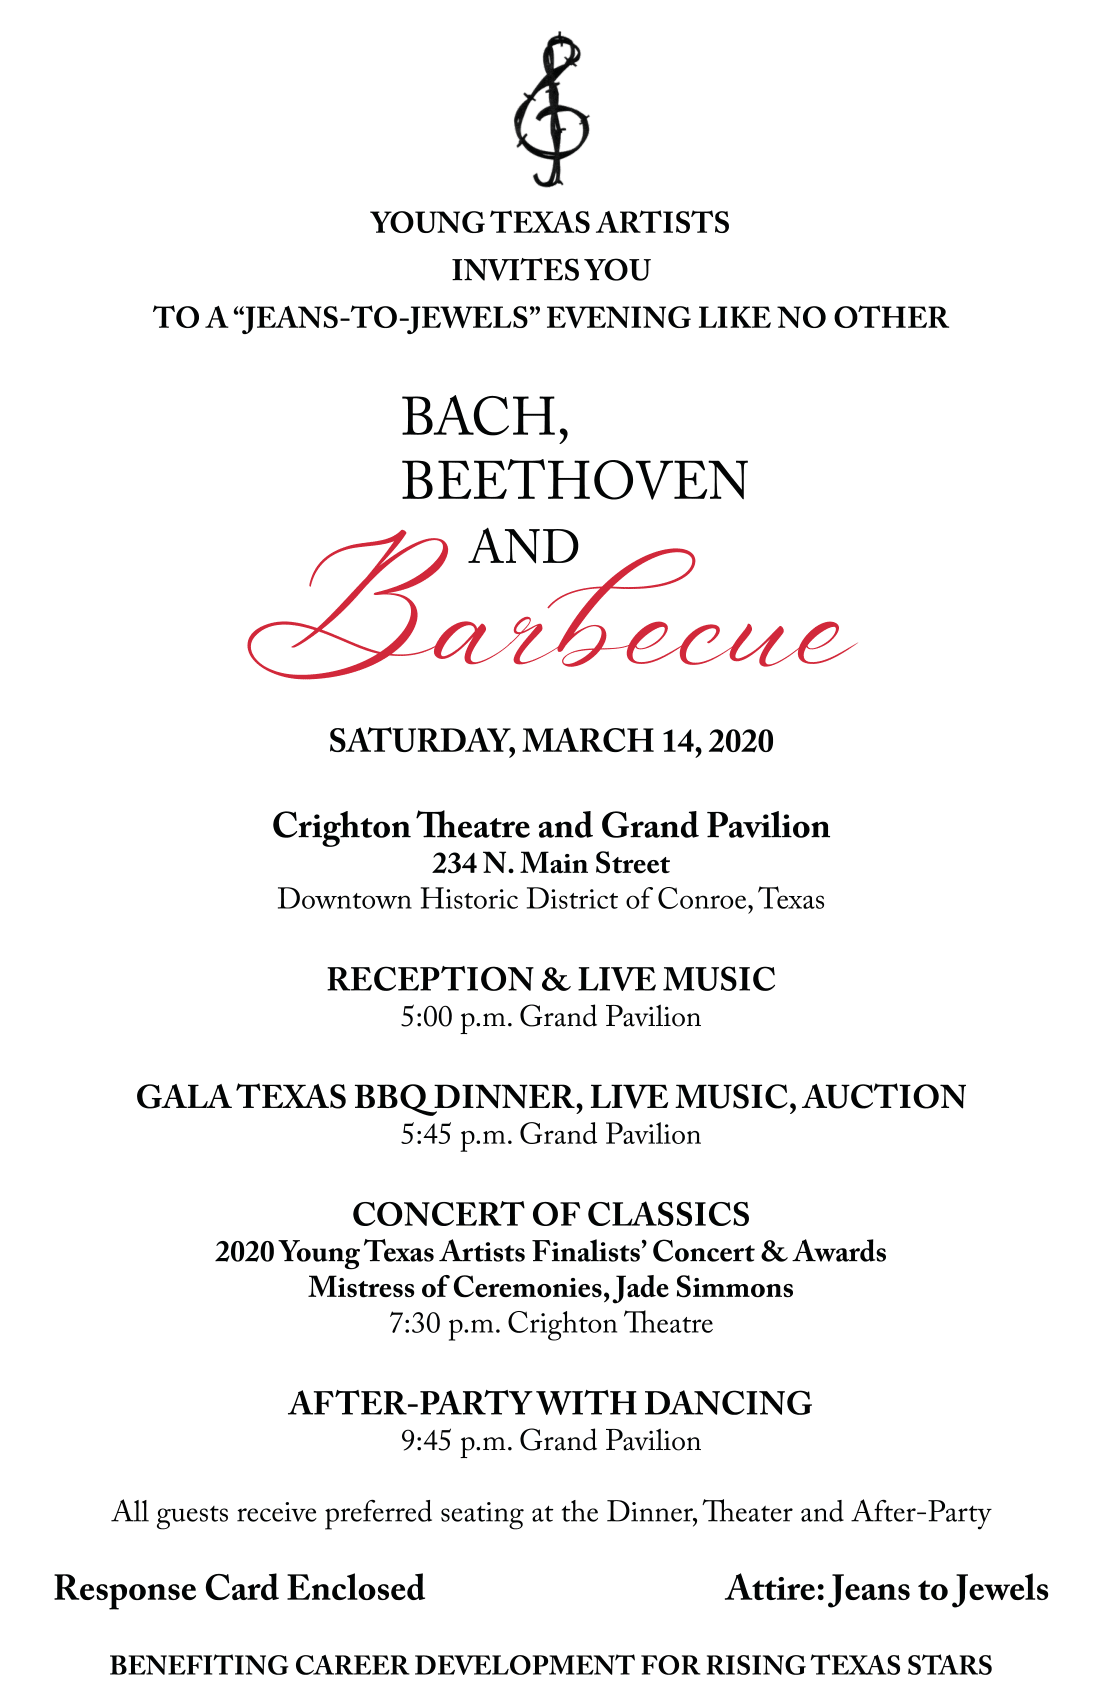 2020 Bach Beethoven and BBQ Invitation - Young Texas Artists Competition - 192020-4